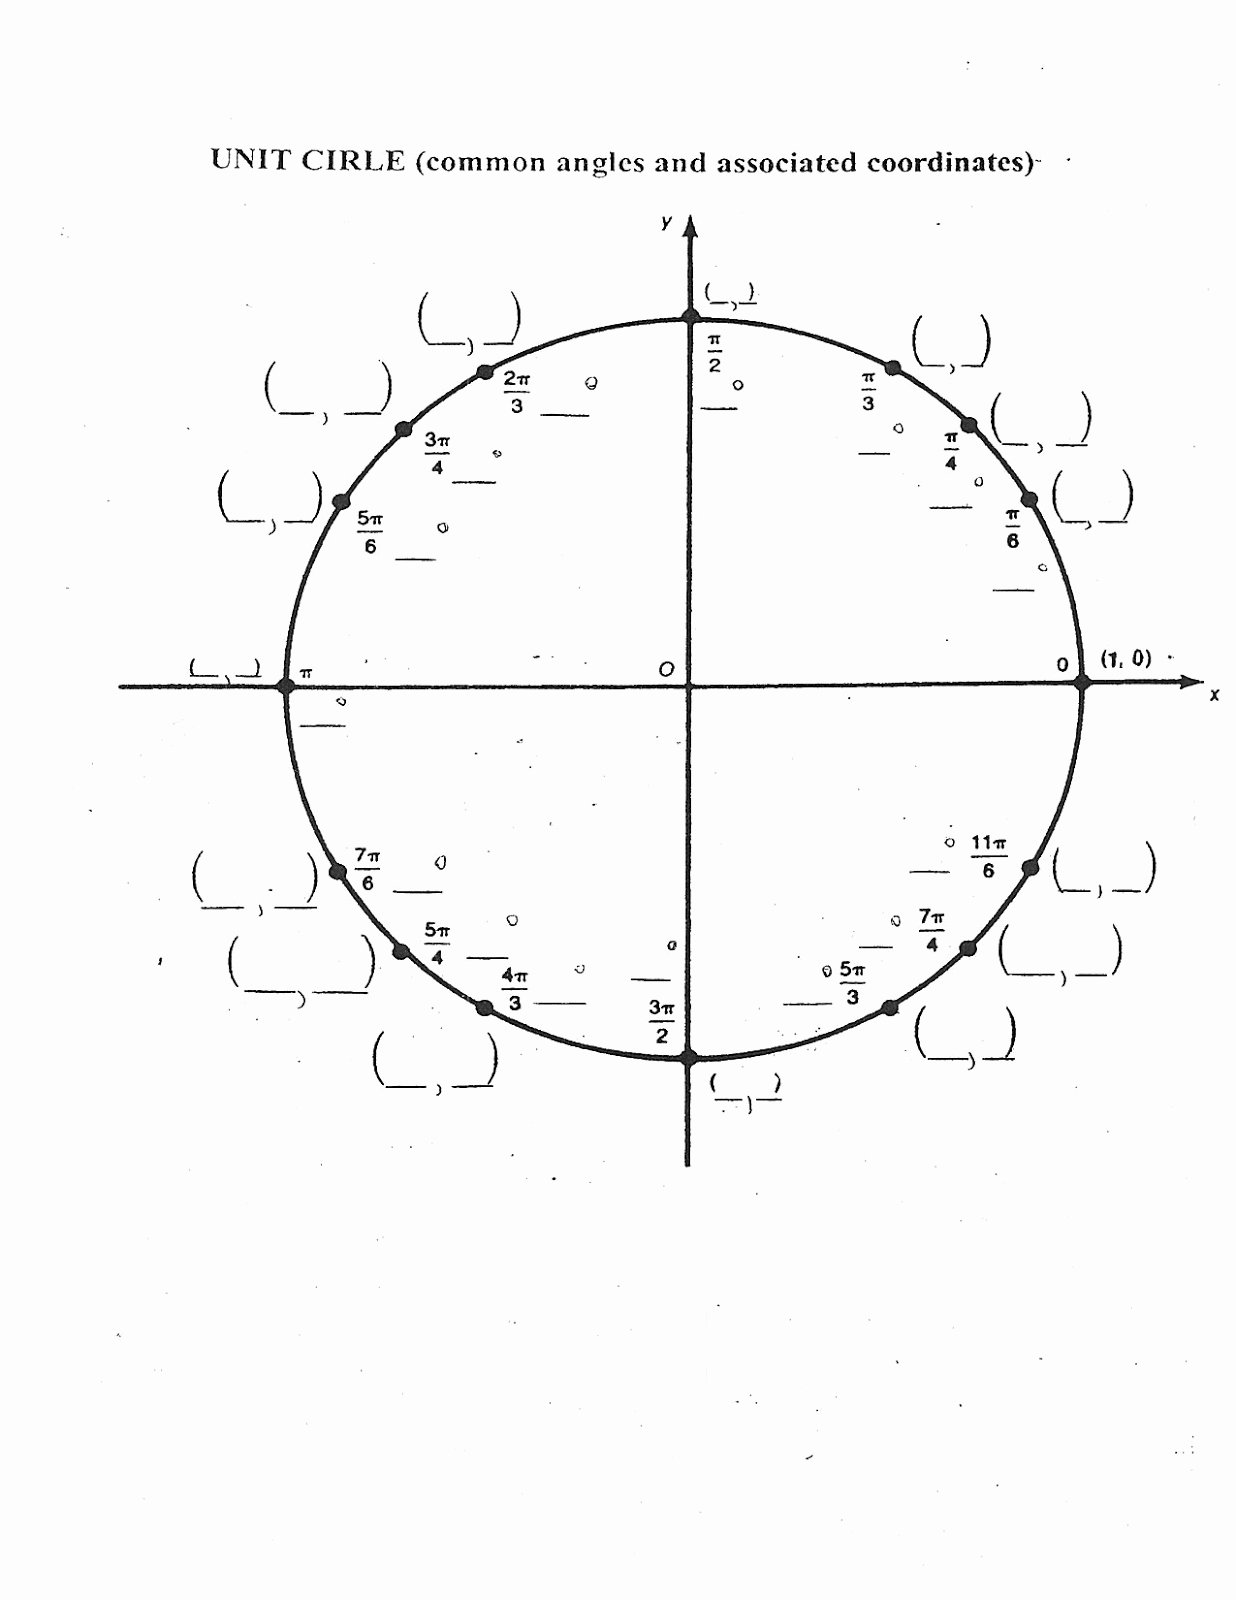 Trigonometry Unit Circle Worksheet Answers Elegant Mr Suominen S Math Homepage Ap Calculus 8 27 13